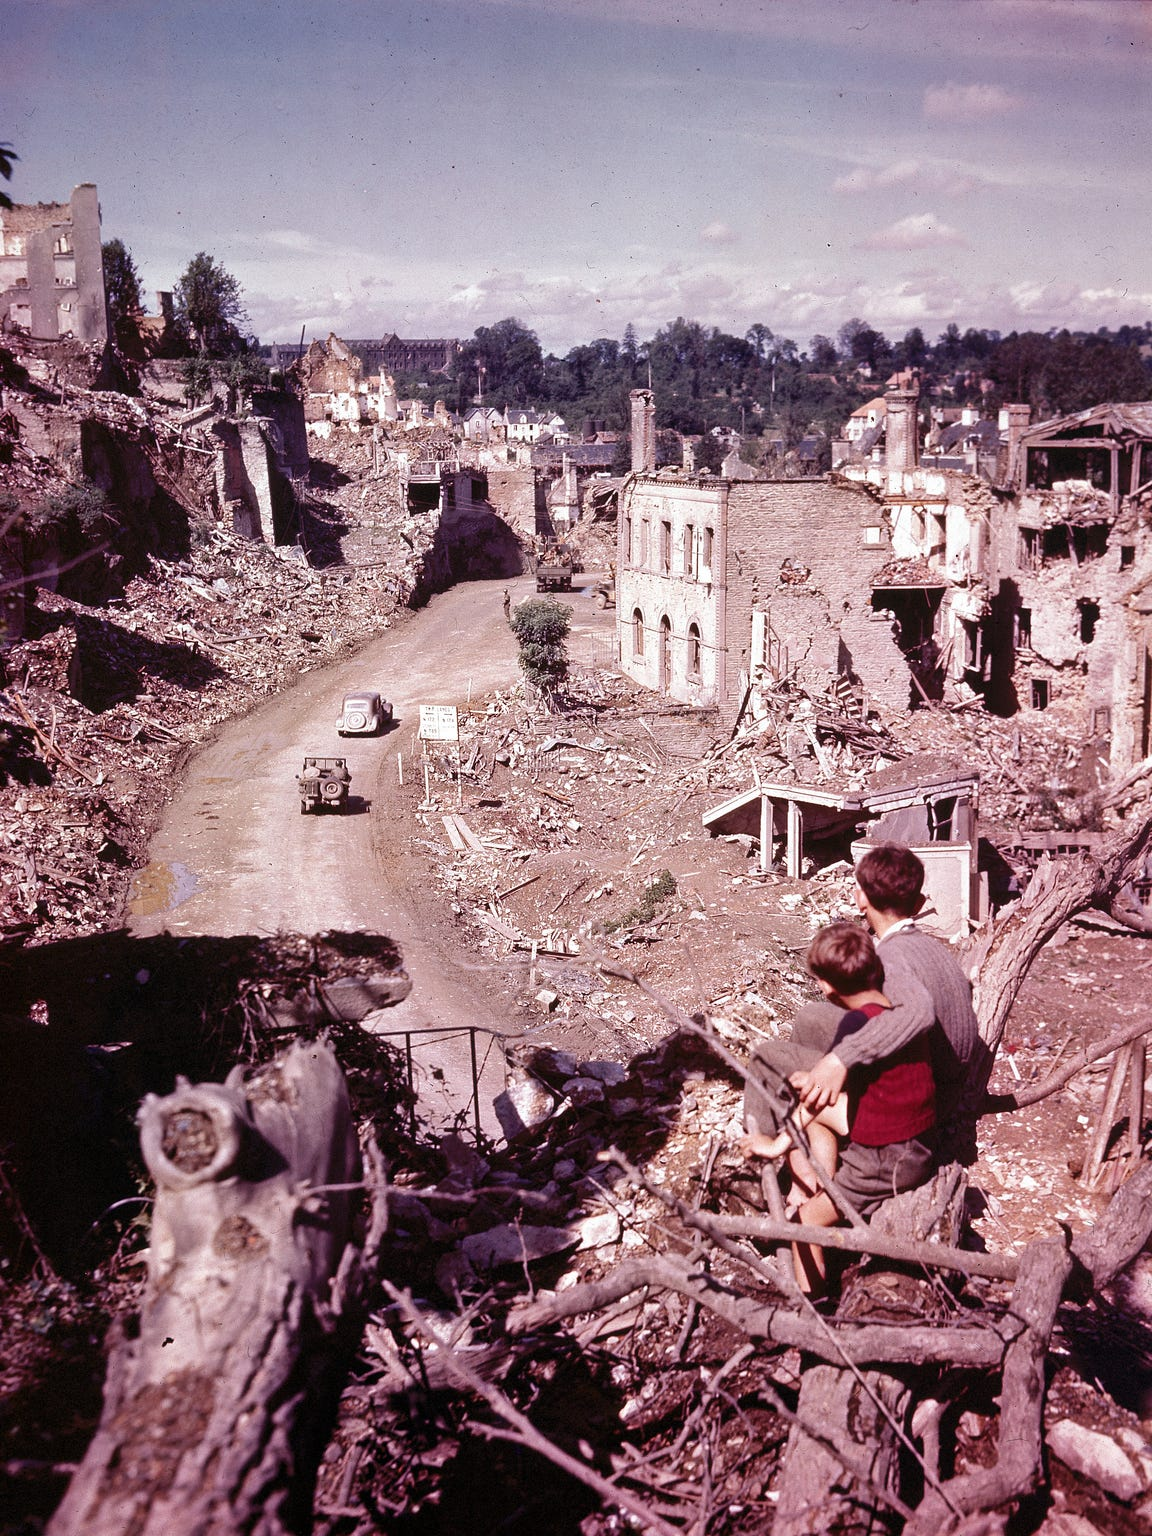 A view from the hilltop overlooking the road leading into St. Lo in July of 1944. during World War II.  Two French children in the foreground watch convoys and trucks of equipment go through their almost completely destroyed city en route to the front. (AP Photo)